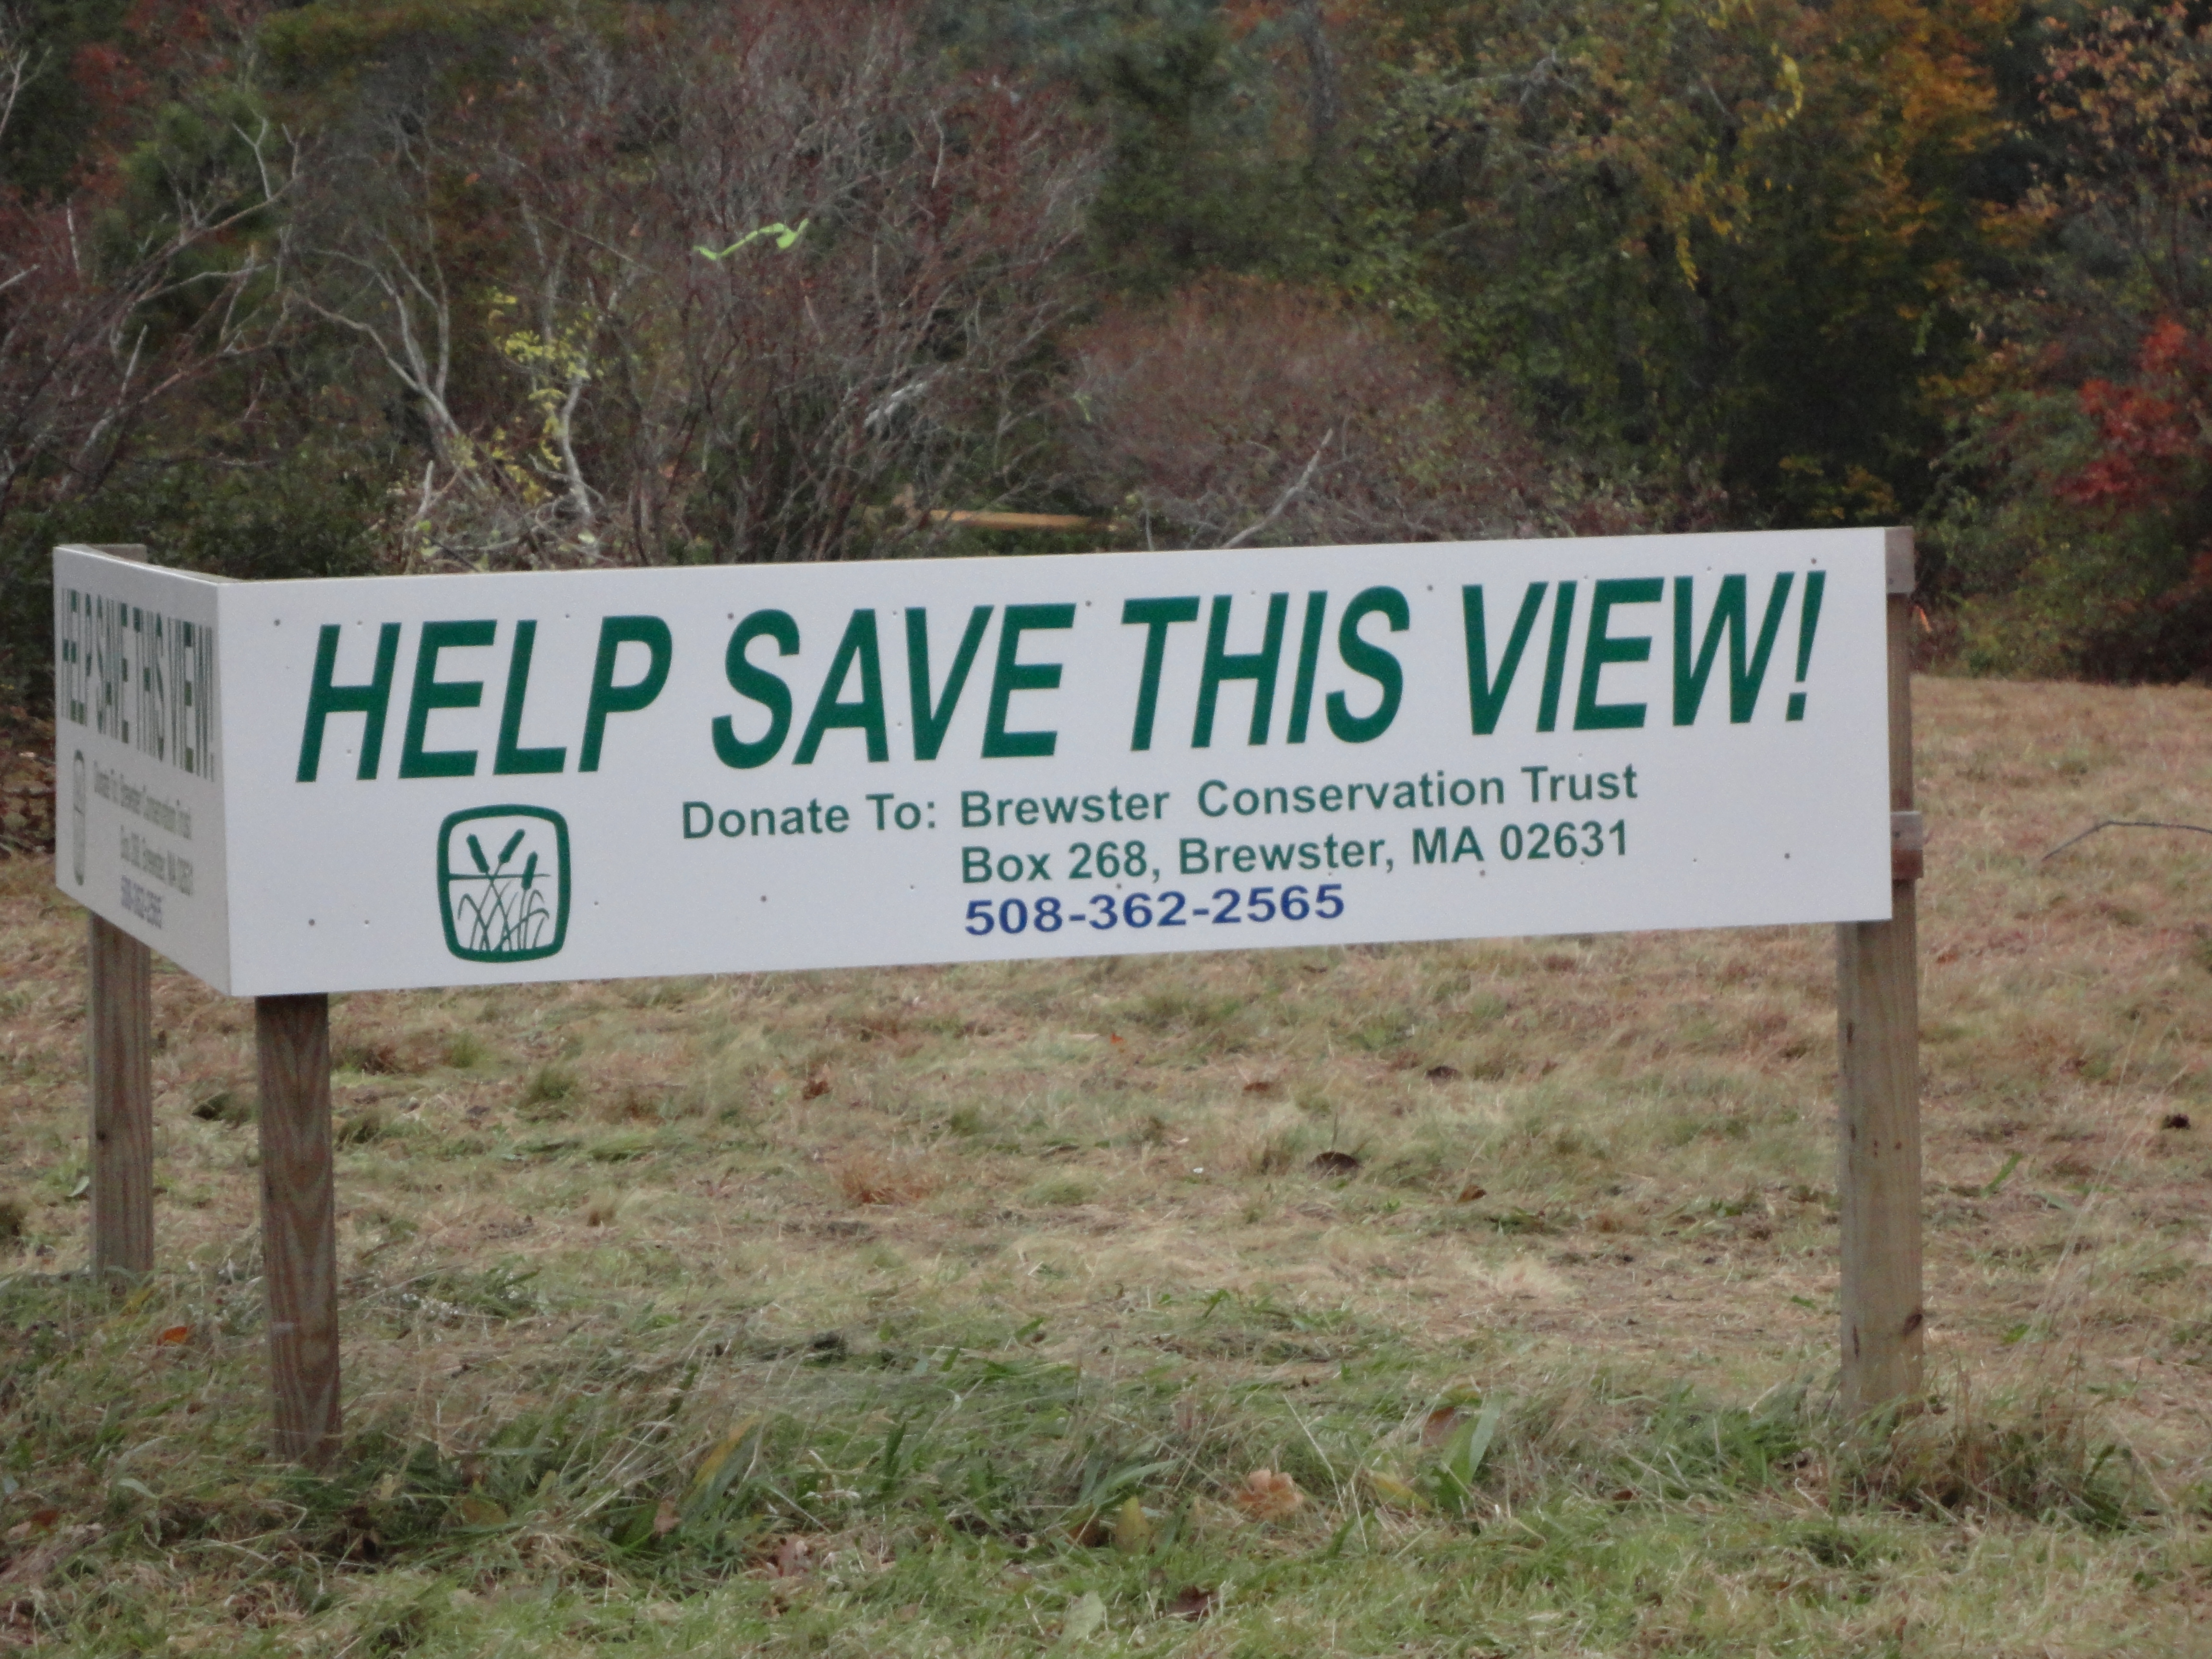 Land conservation purchases property | Brewster By the Sea Cape Cod Inn | Brewster, MA